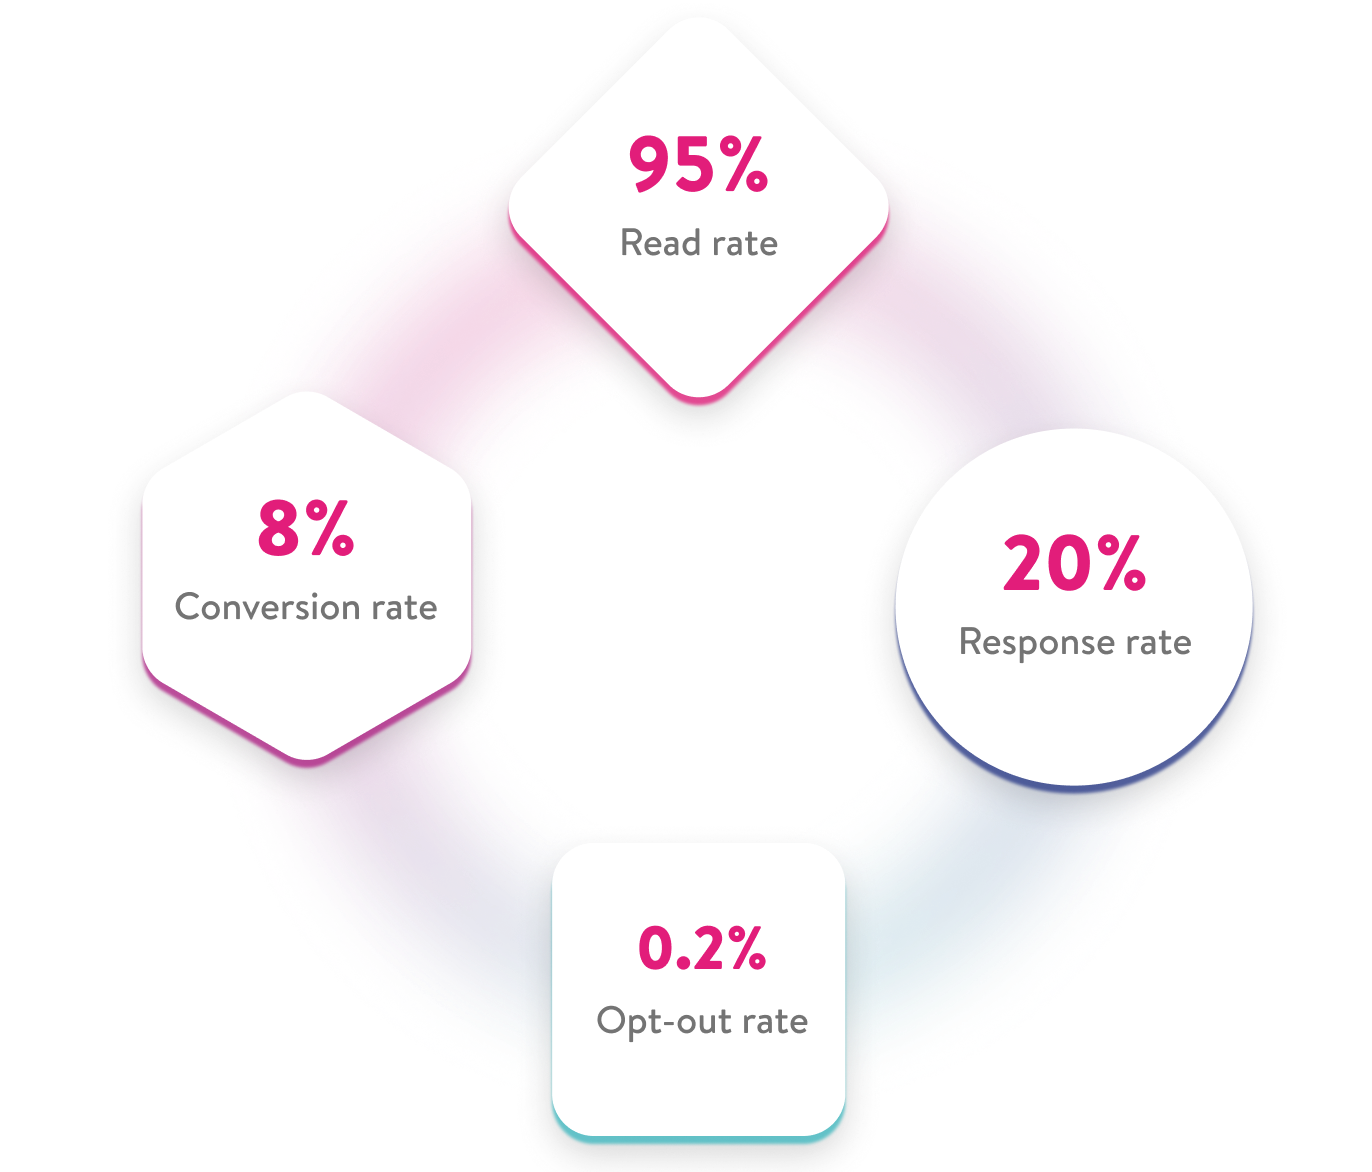 95% Read rate, 20% Response rate, 0.2% Opt-out rate, 8% Conversion rate